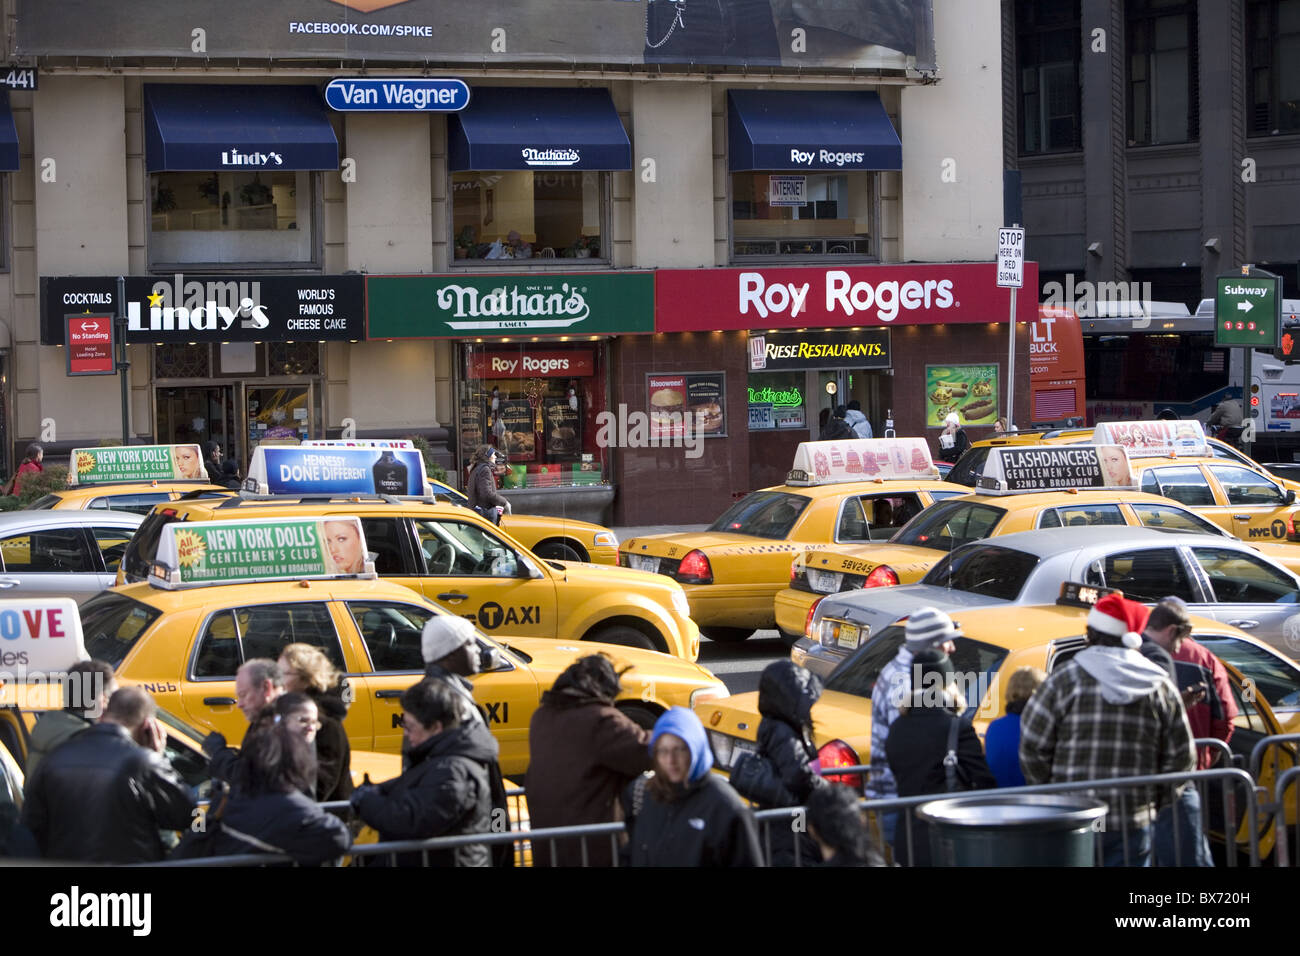 The densely crowded area of 7th Avenue around 33rd Street by Penn Station in New York City. - Stock Image